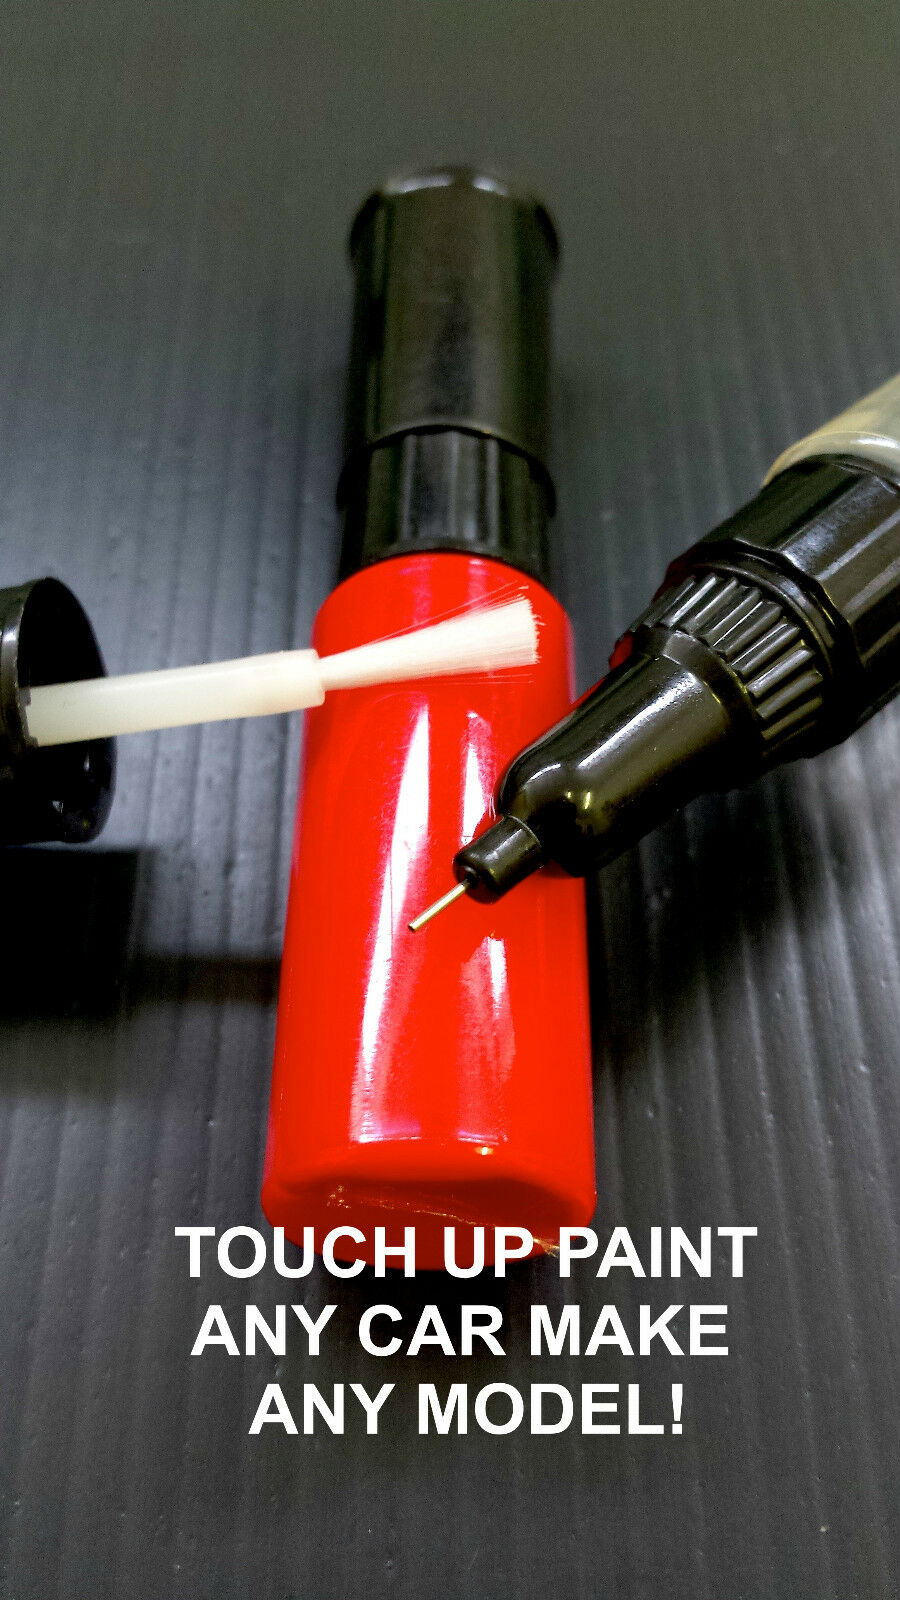 HOLDEN TOUCH UP PAINT PEN AND BRUSH MADE TO YOUR COLOUR CODE AUTO TOUCH UP PAINT